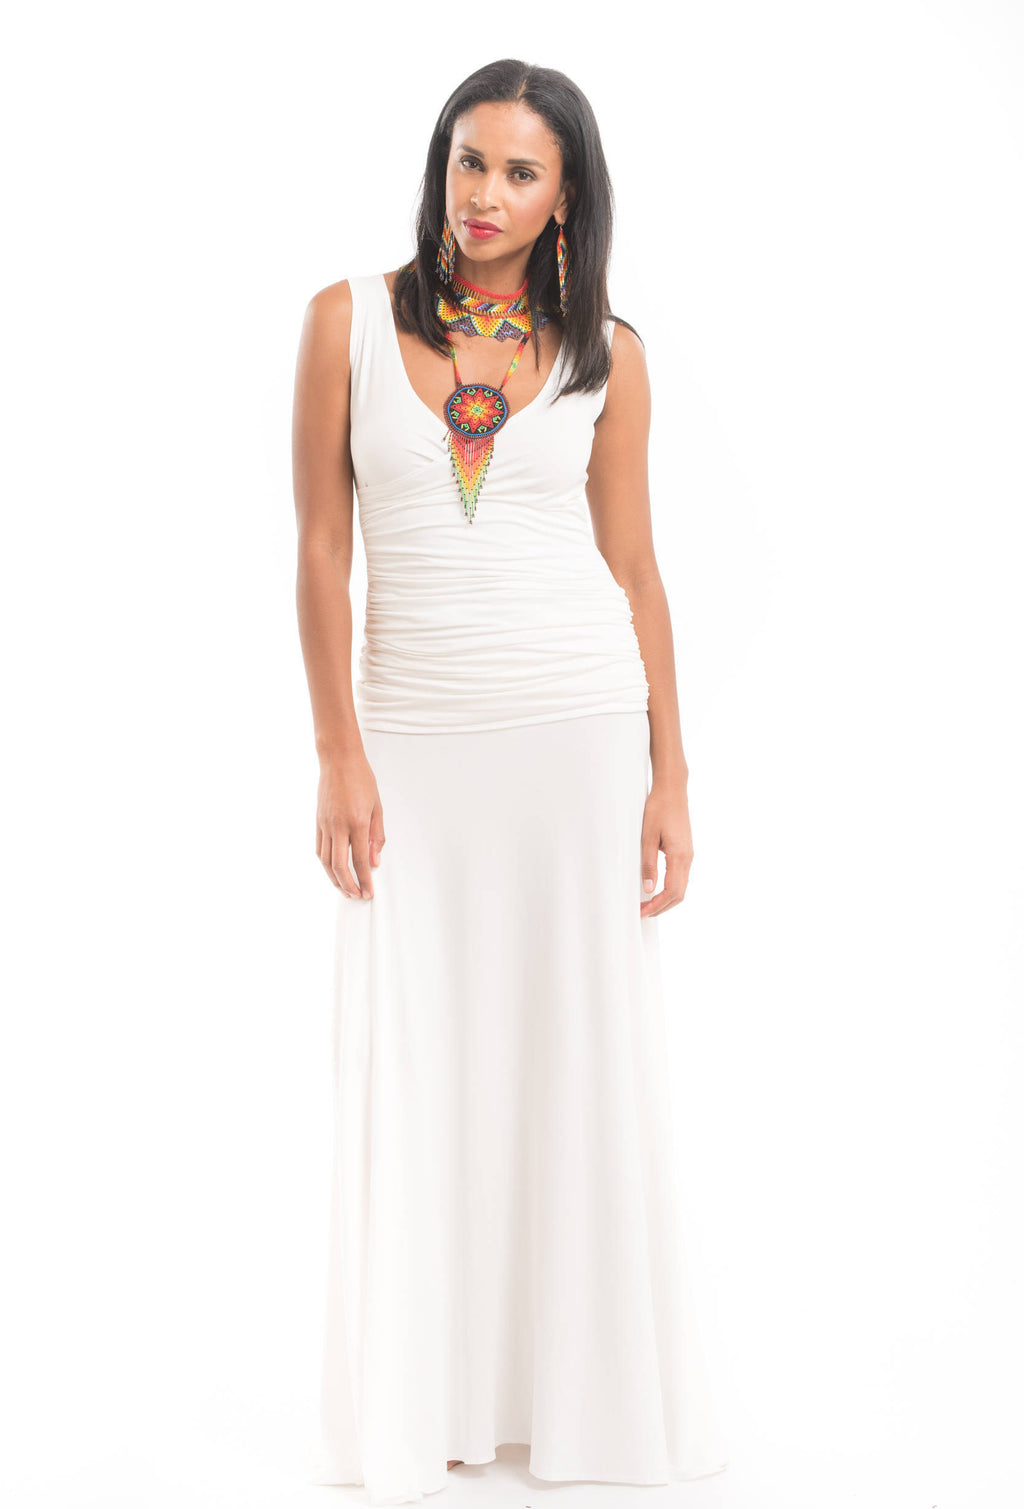 Bamboo Flamenco Skirt White - MUDRA